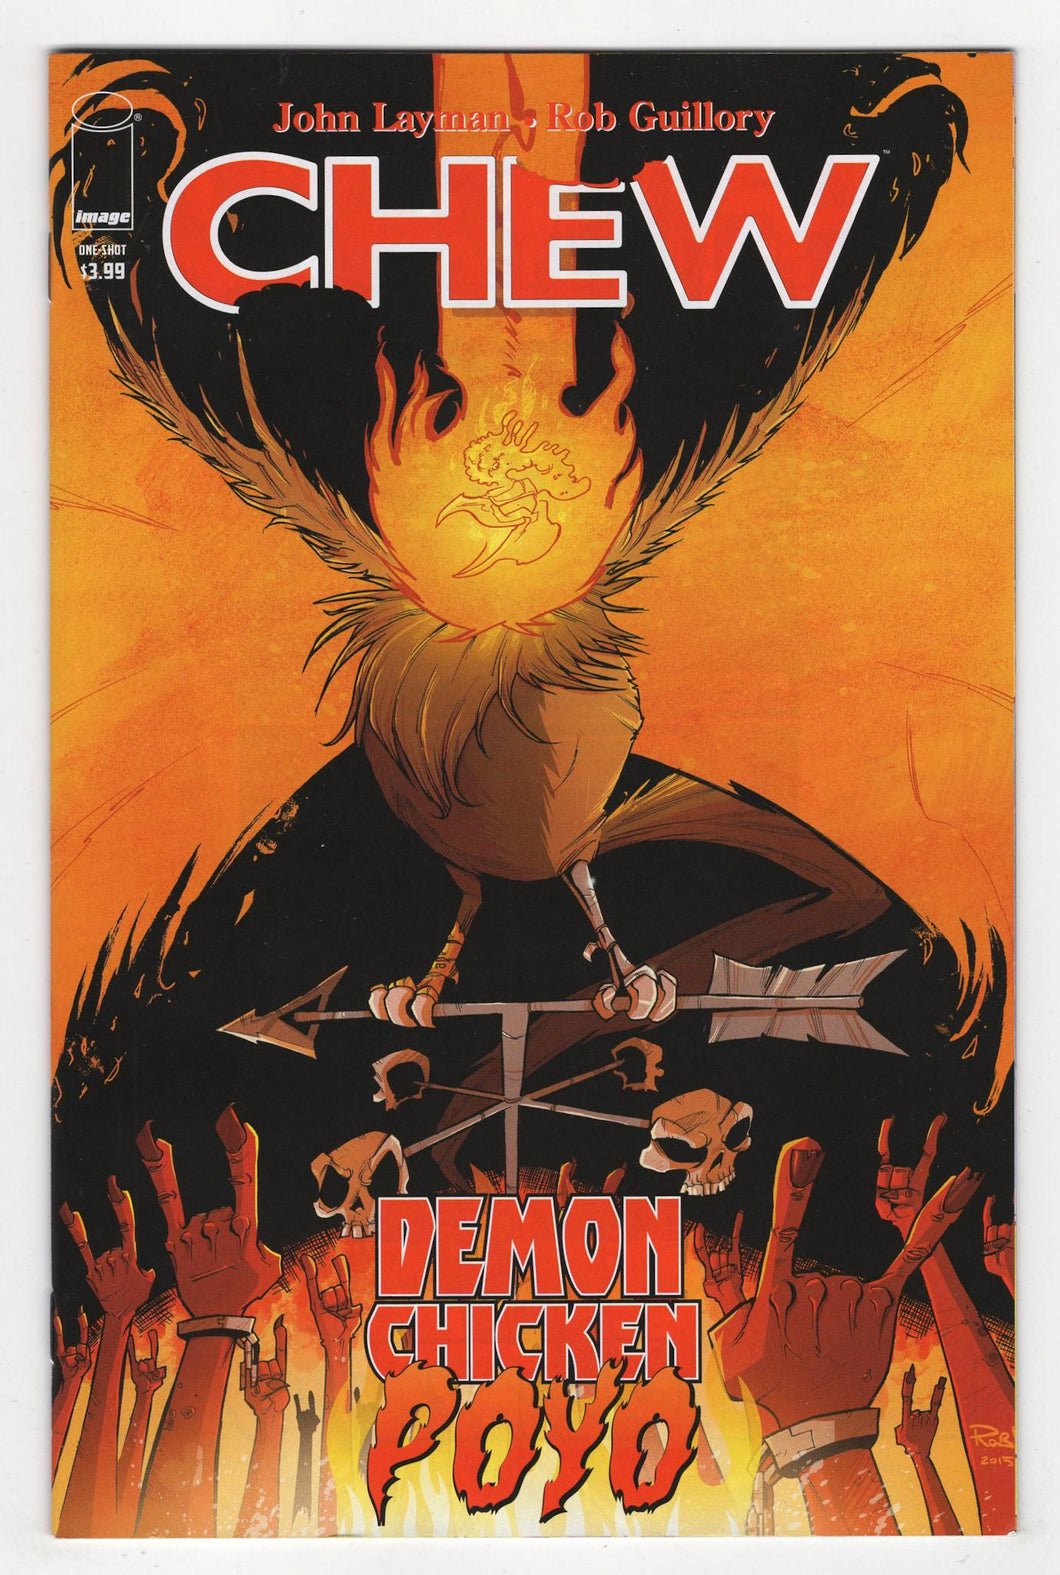 Chew Demon Chicken Poyo One Shot Cover Front